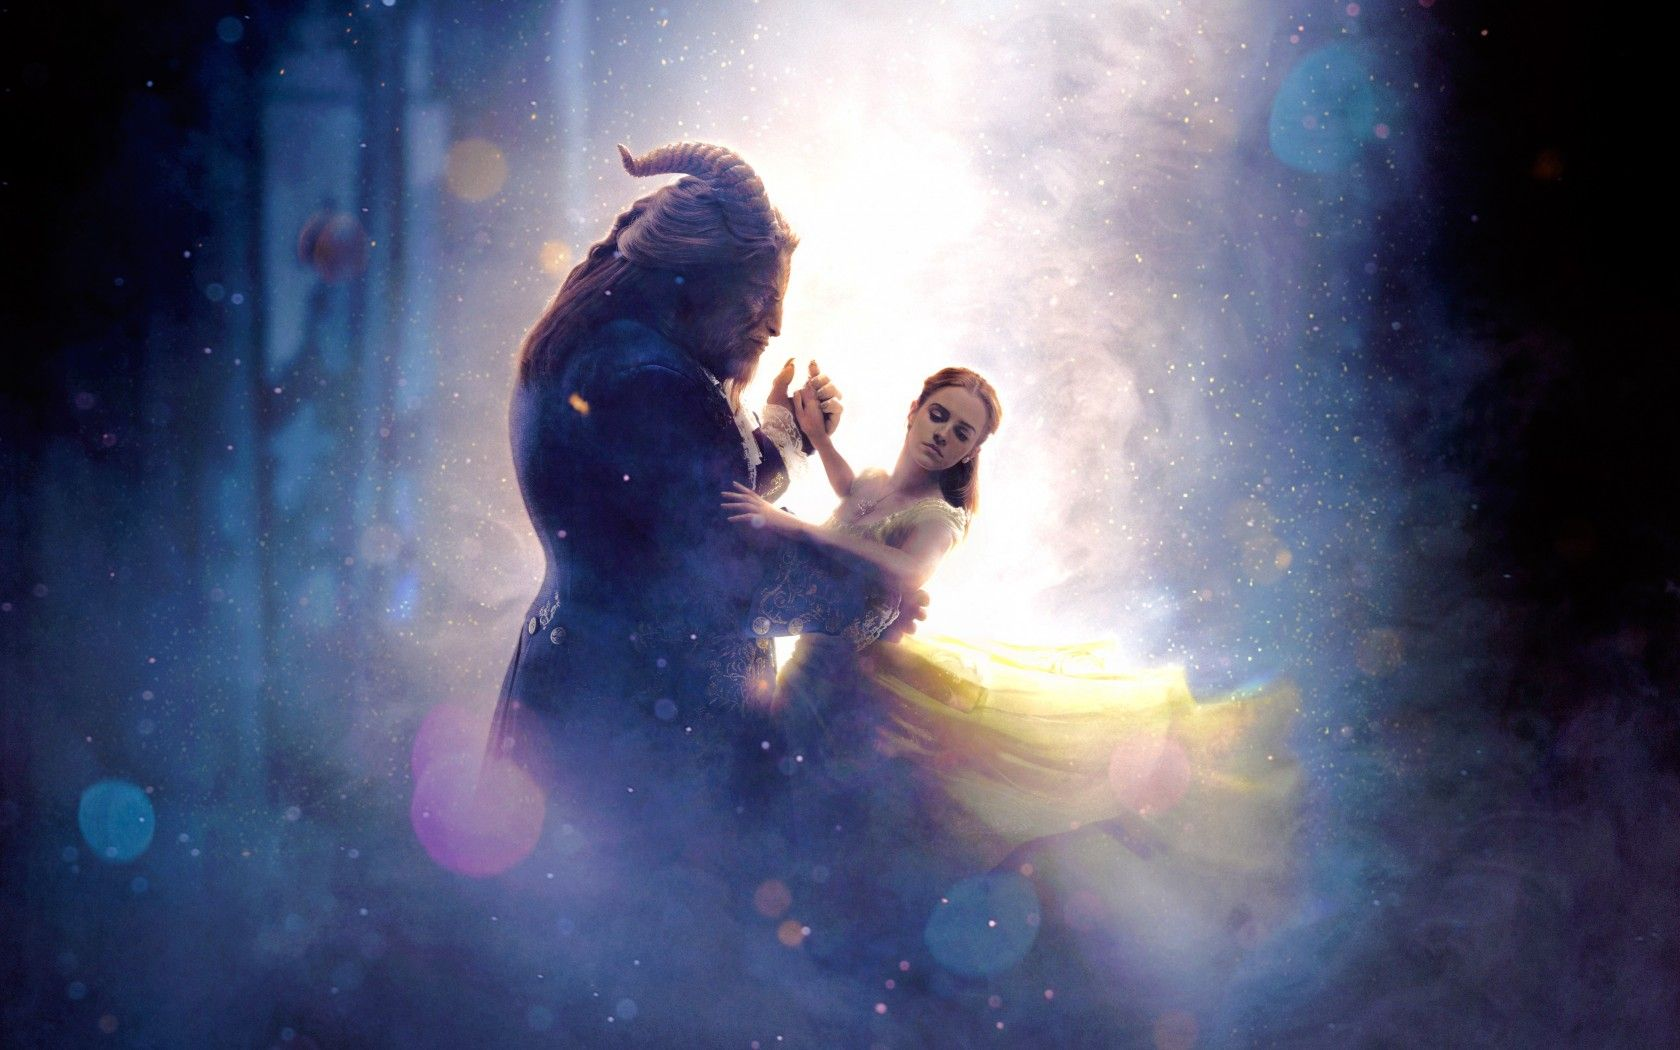 beauty and the beast 2017 movie stills Best site for